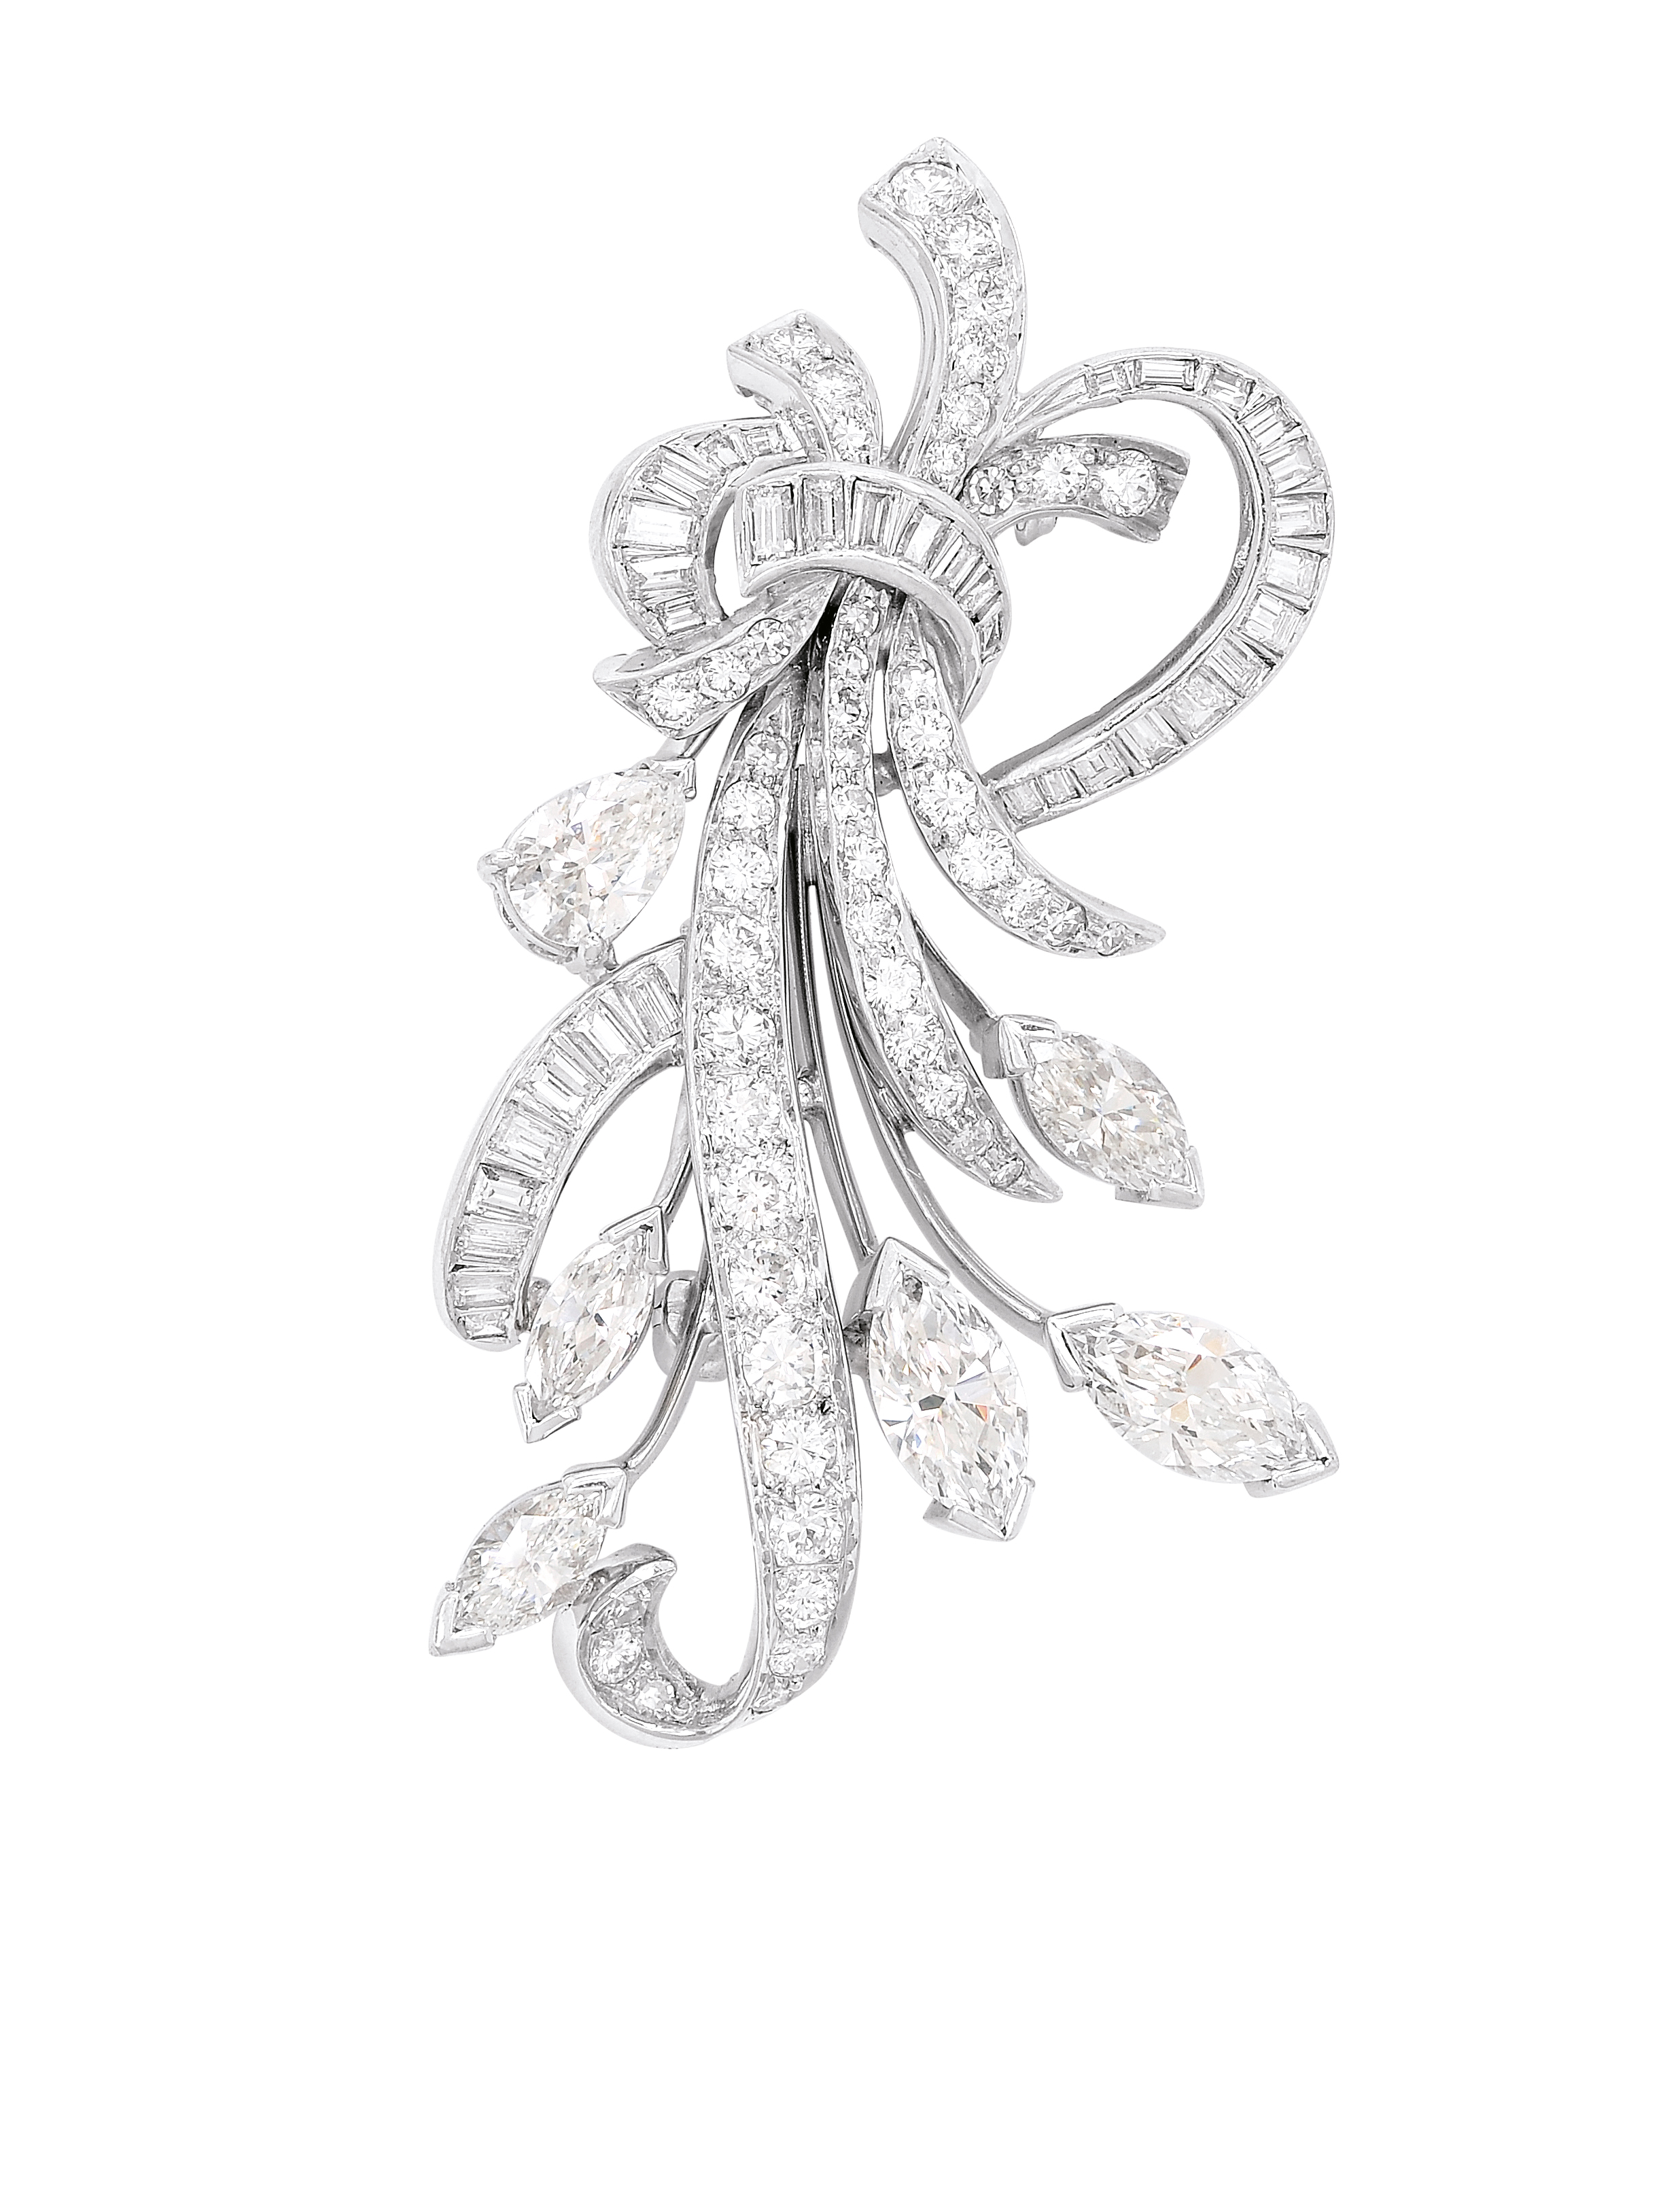 Diamond And Platinum Floral Brooch, 1960's: Lot 183, Spring 2014 sale